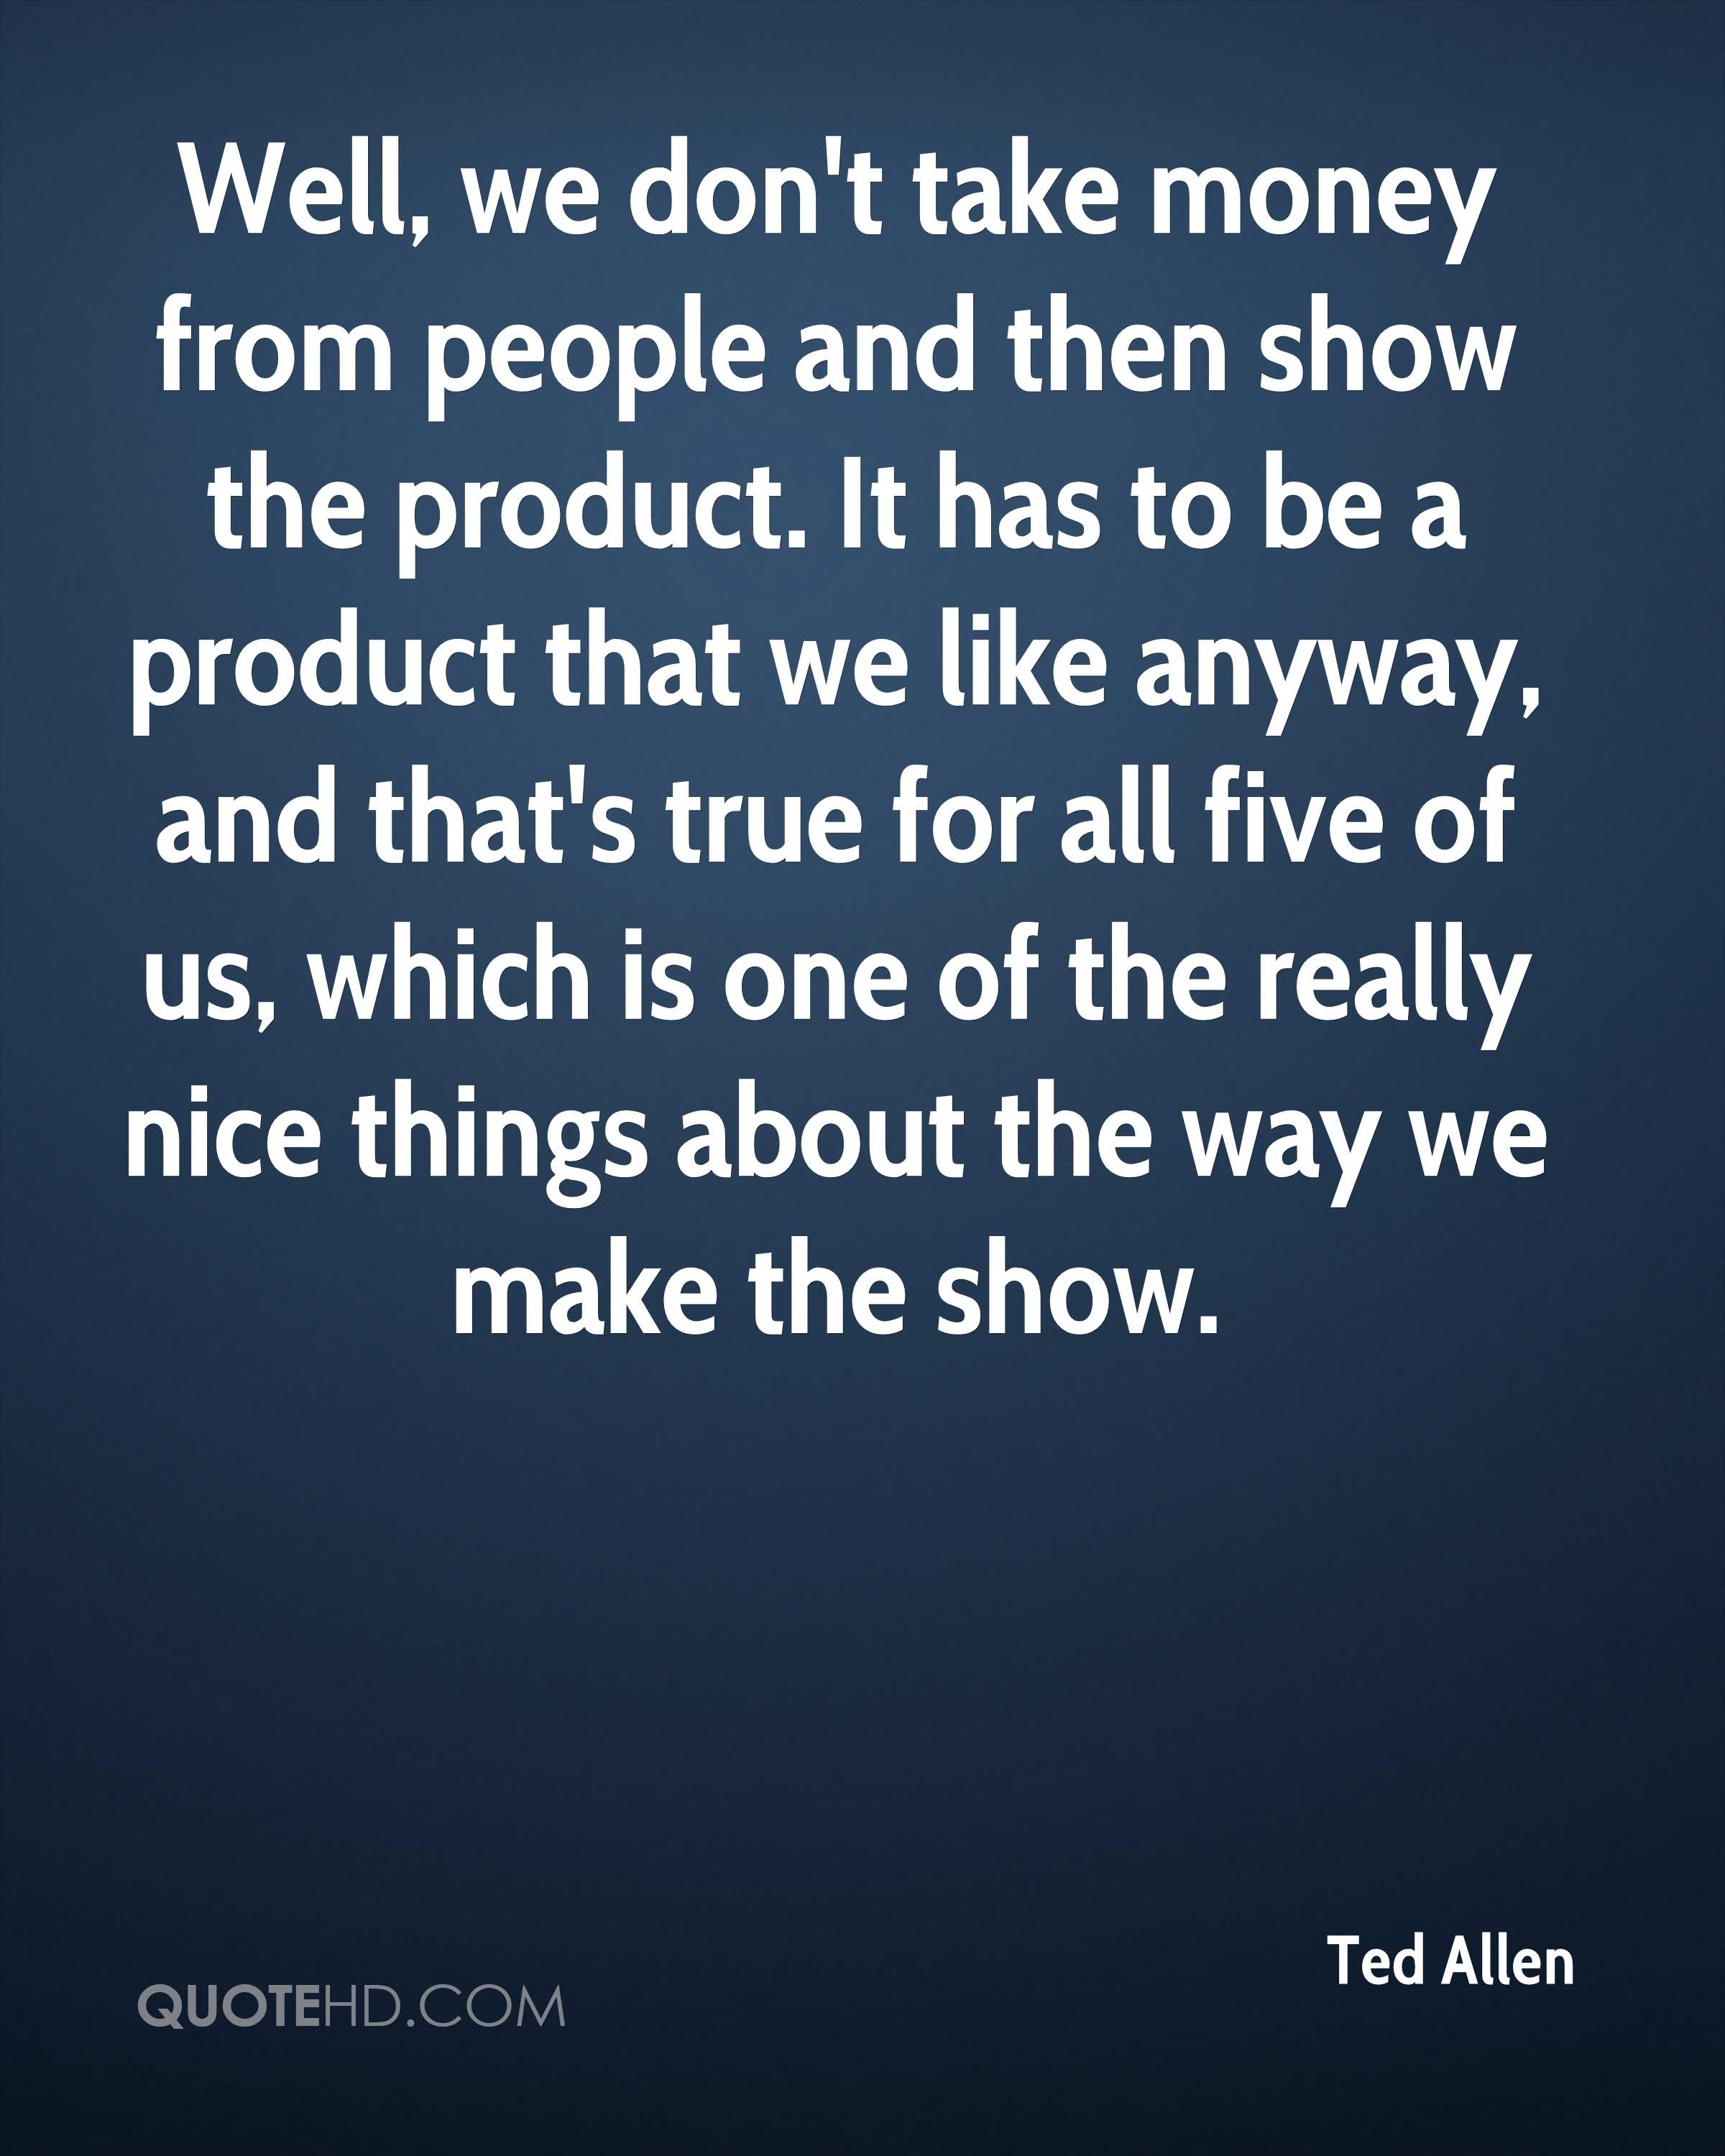 Well, we don't take money from people and then show the product. It has to be a product that we like anyway, and that's true for all five of us, which is one of the really nice things about the way we make the show.